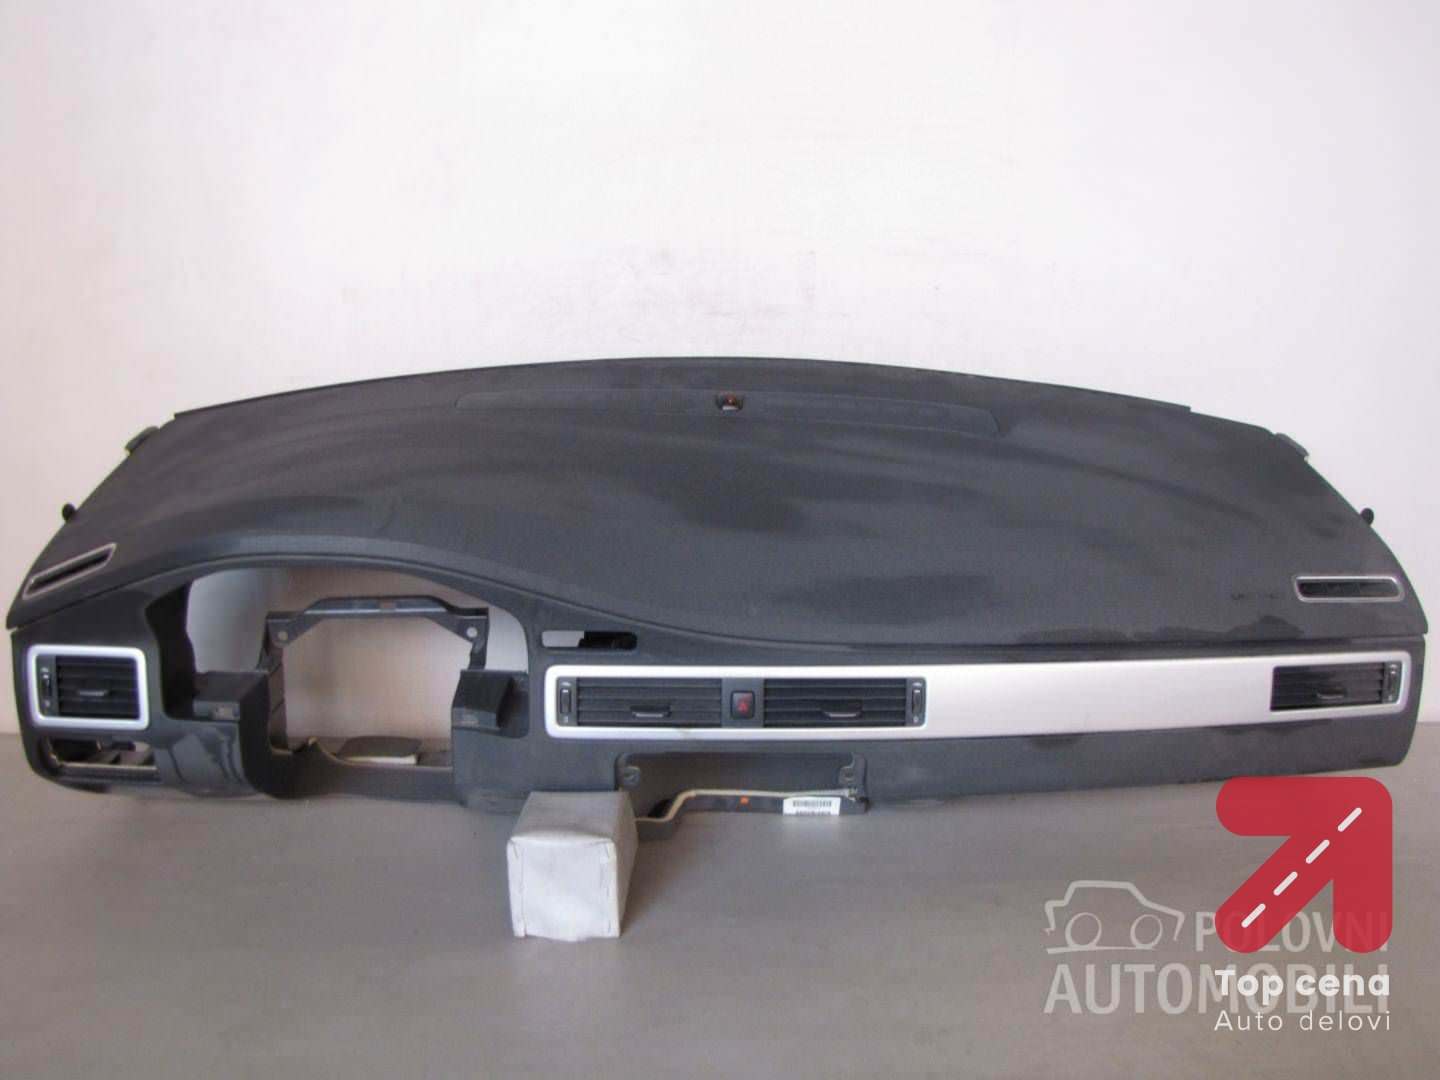 INSTRUMENT TABLA AIRBAG za Volvo V70 od 2008. do 2011. god.